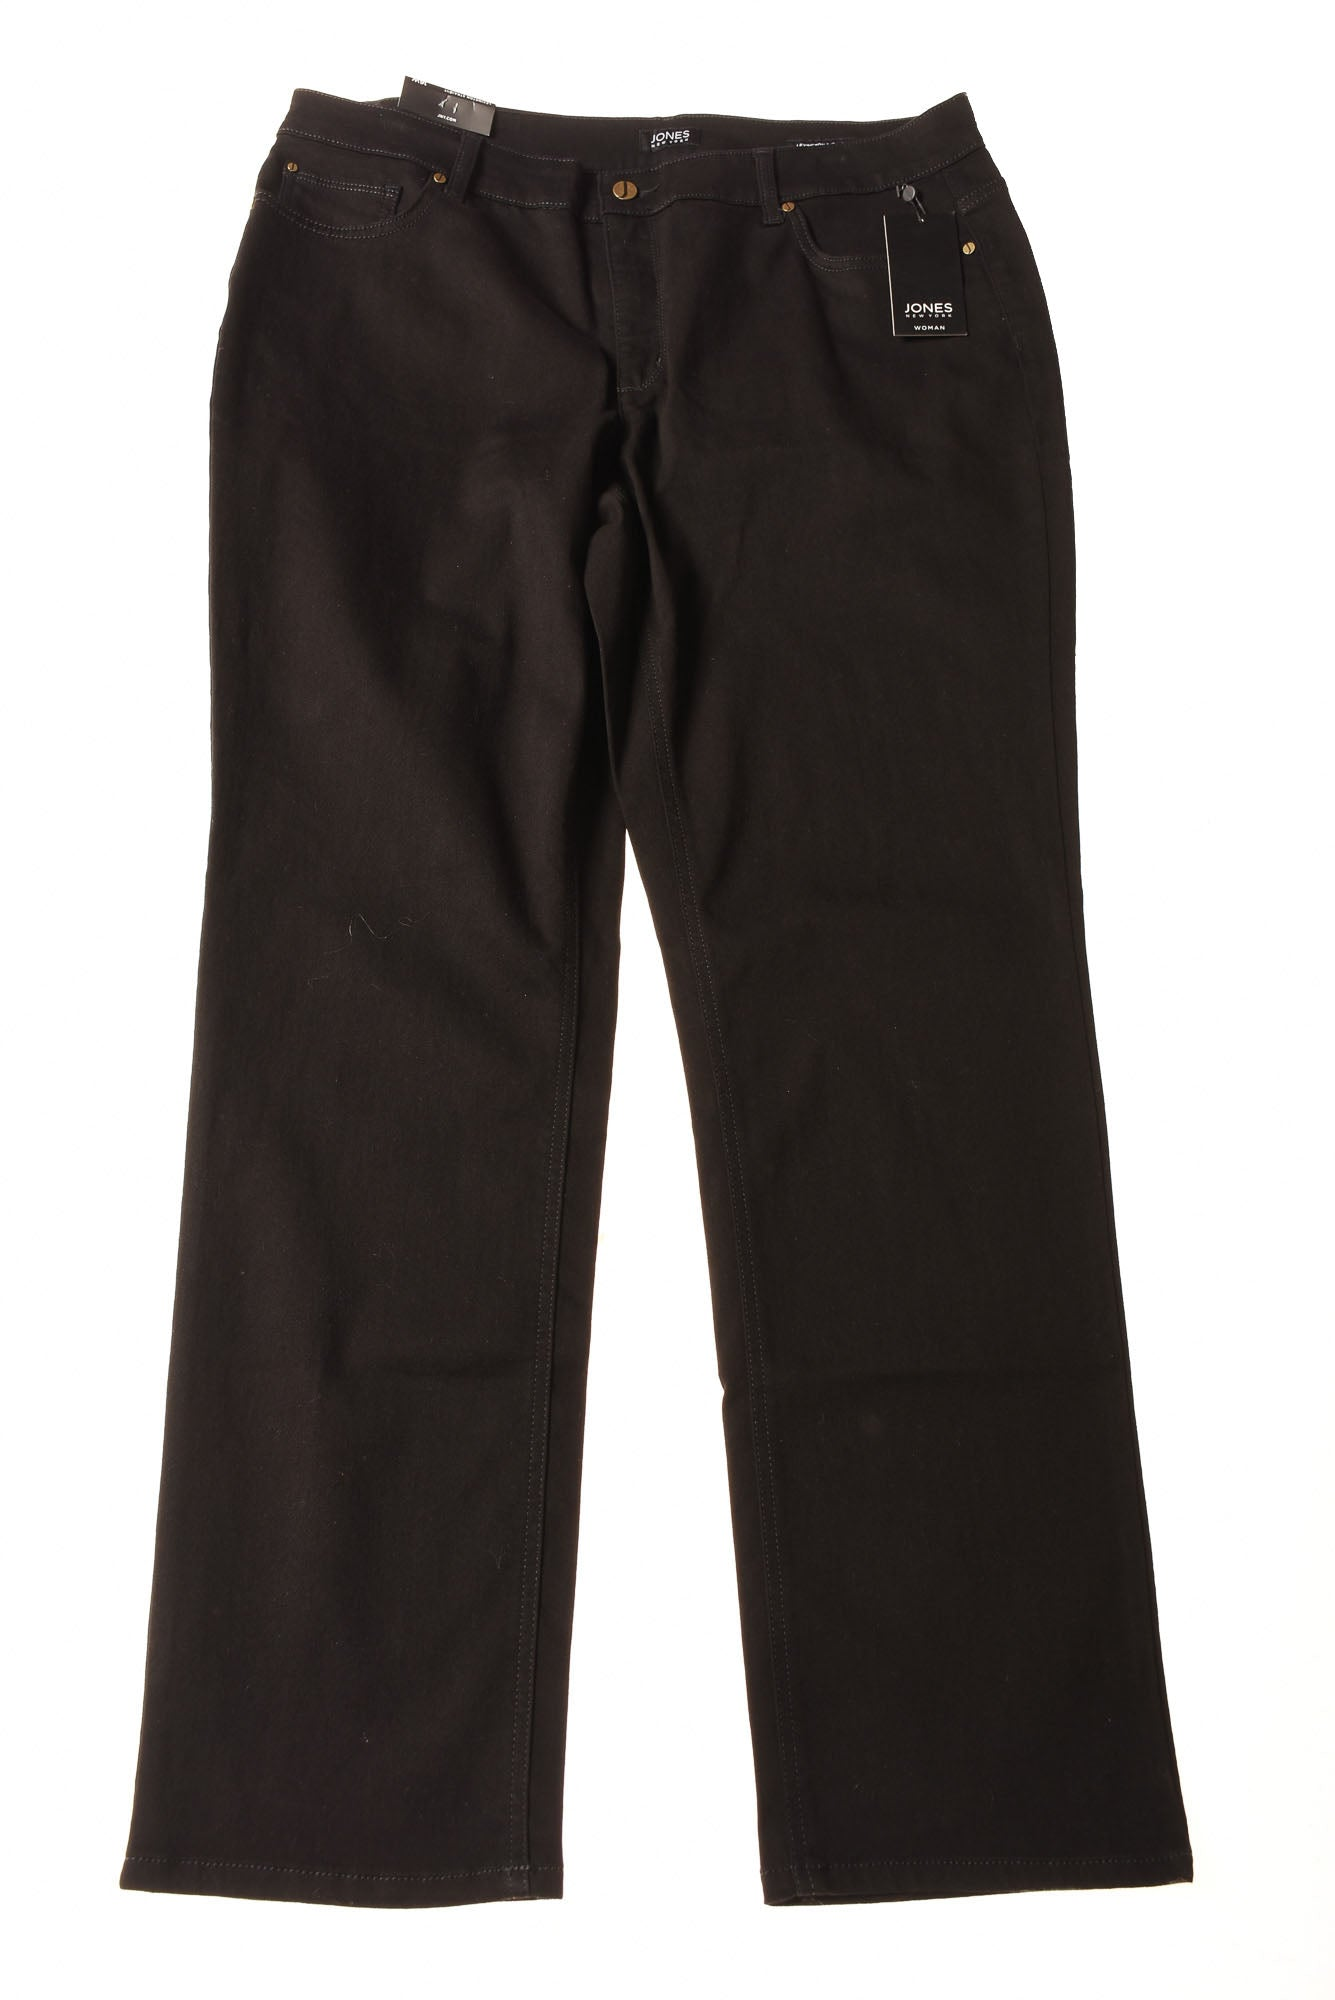 7ffb8154f2511 NEW Jones New York Women s Jeans 16 Black - Village Discount Outlet